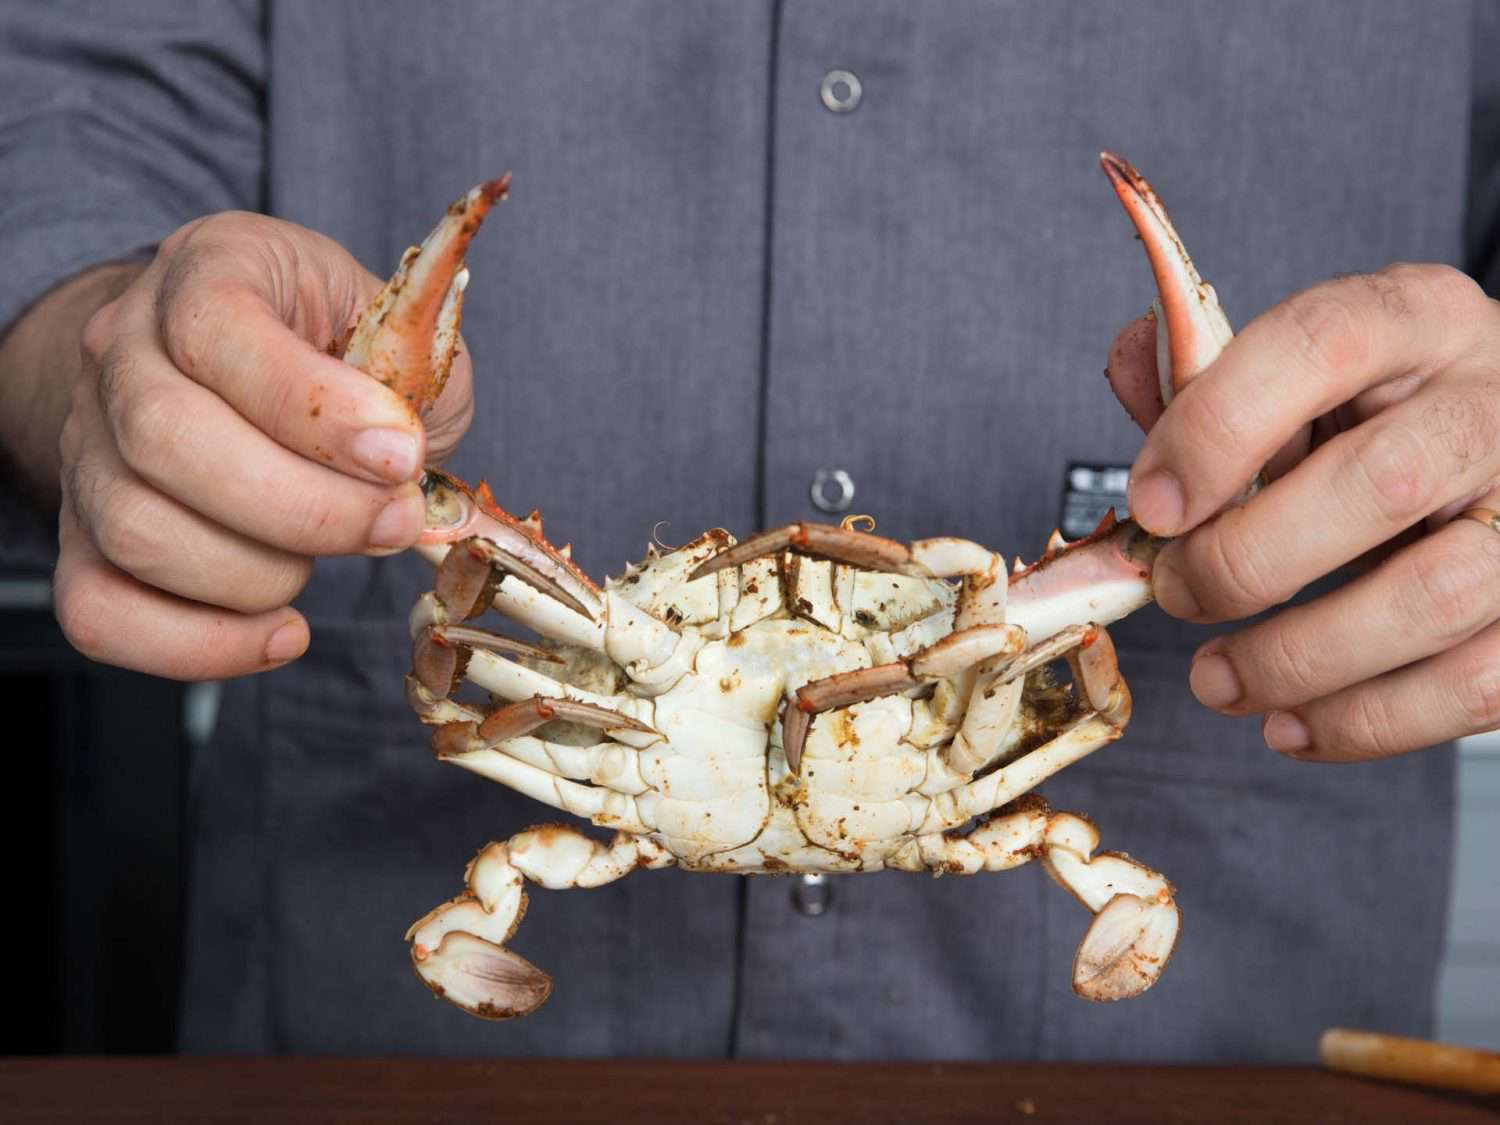 Pulling off the legs of a cooked crab